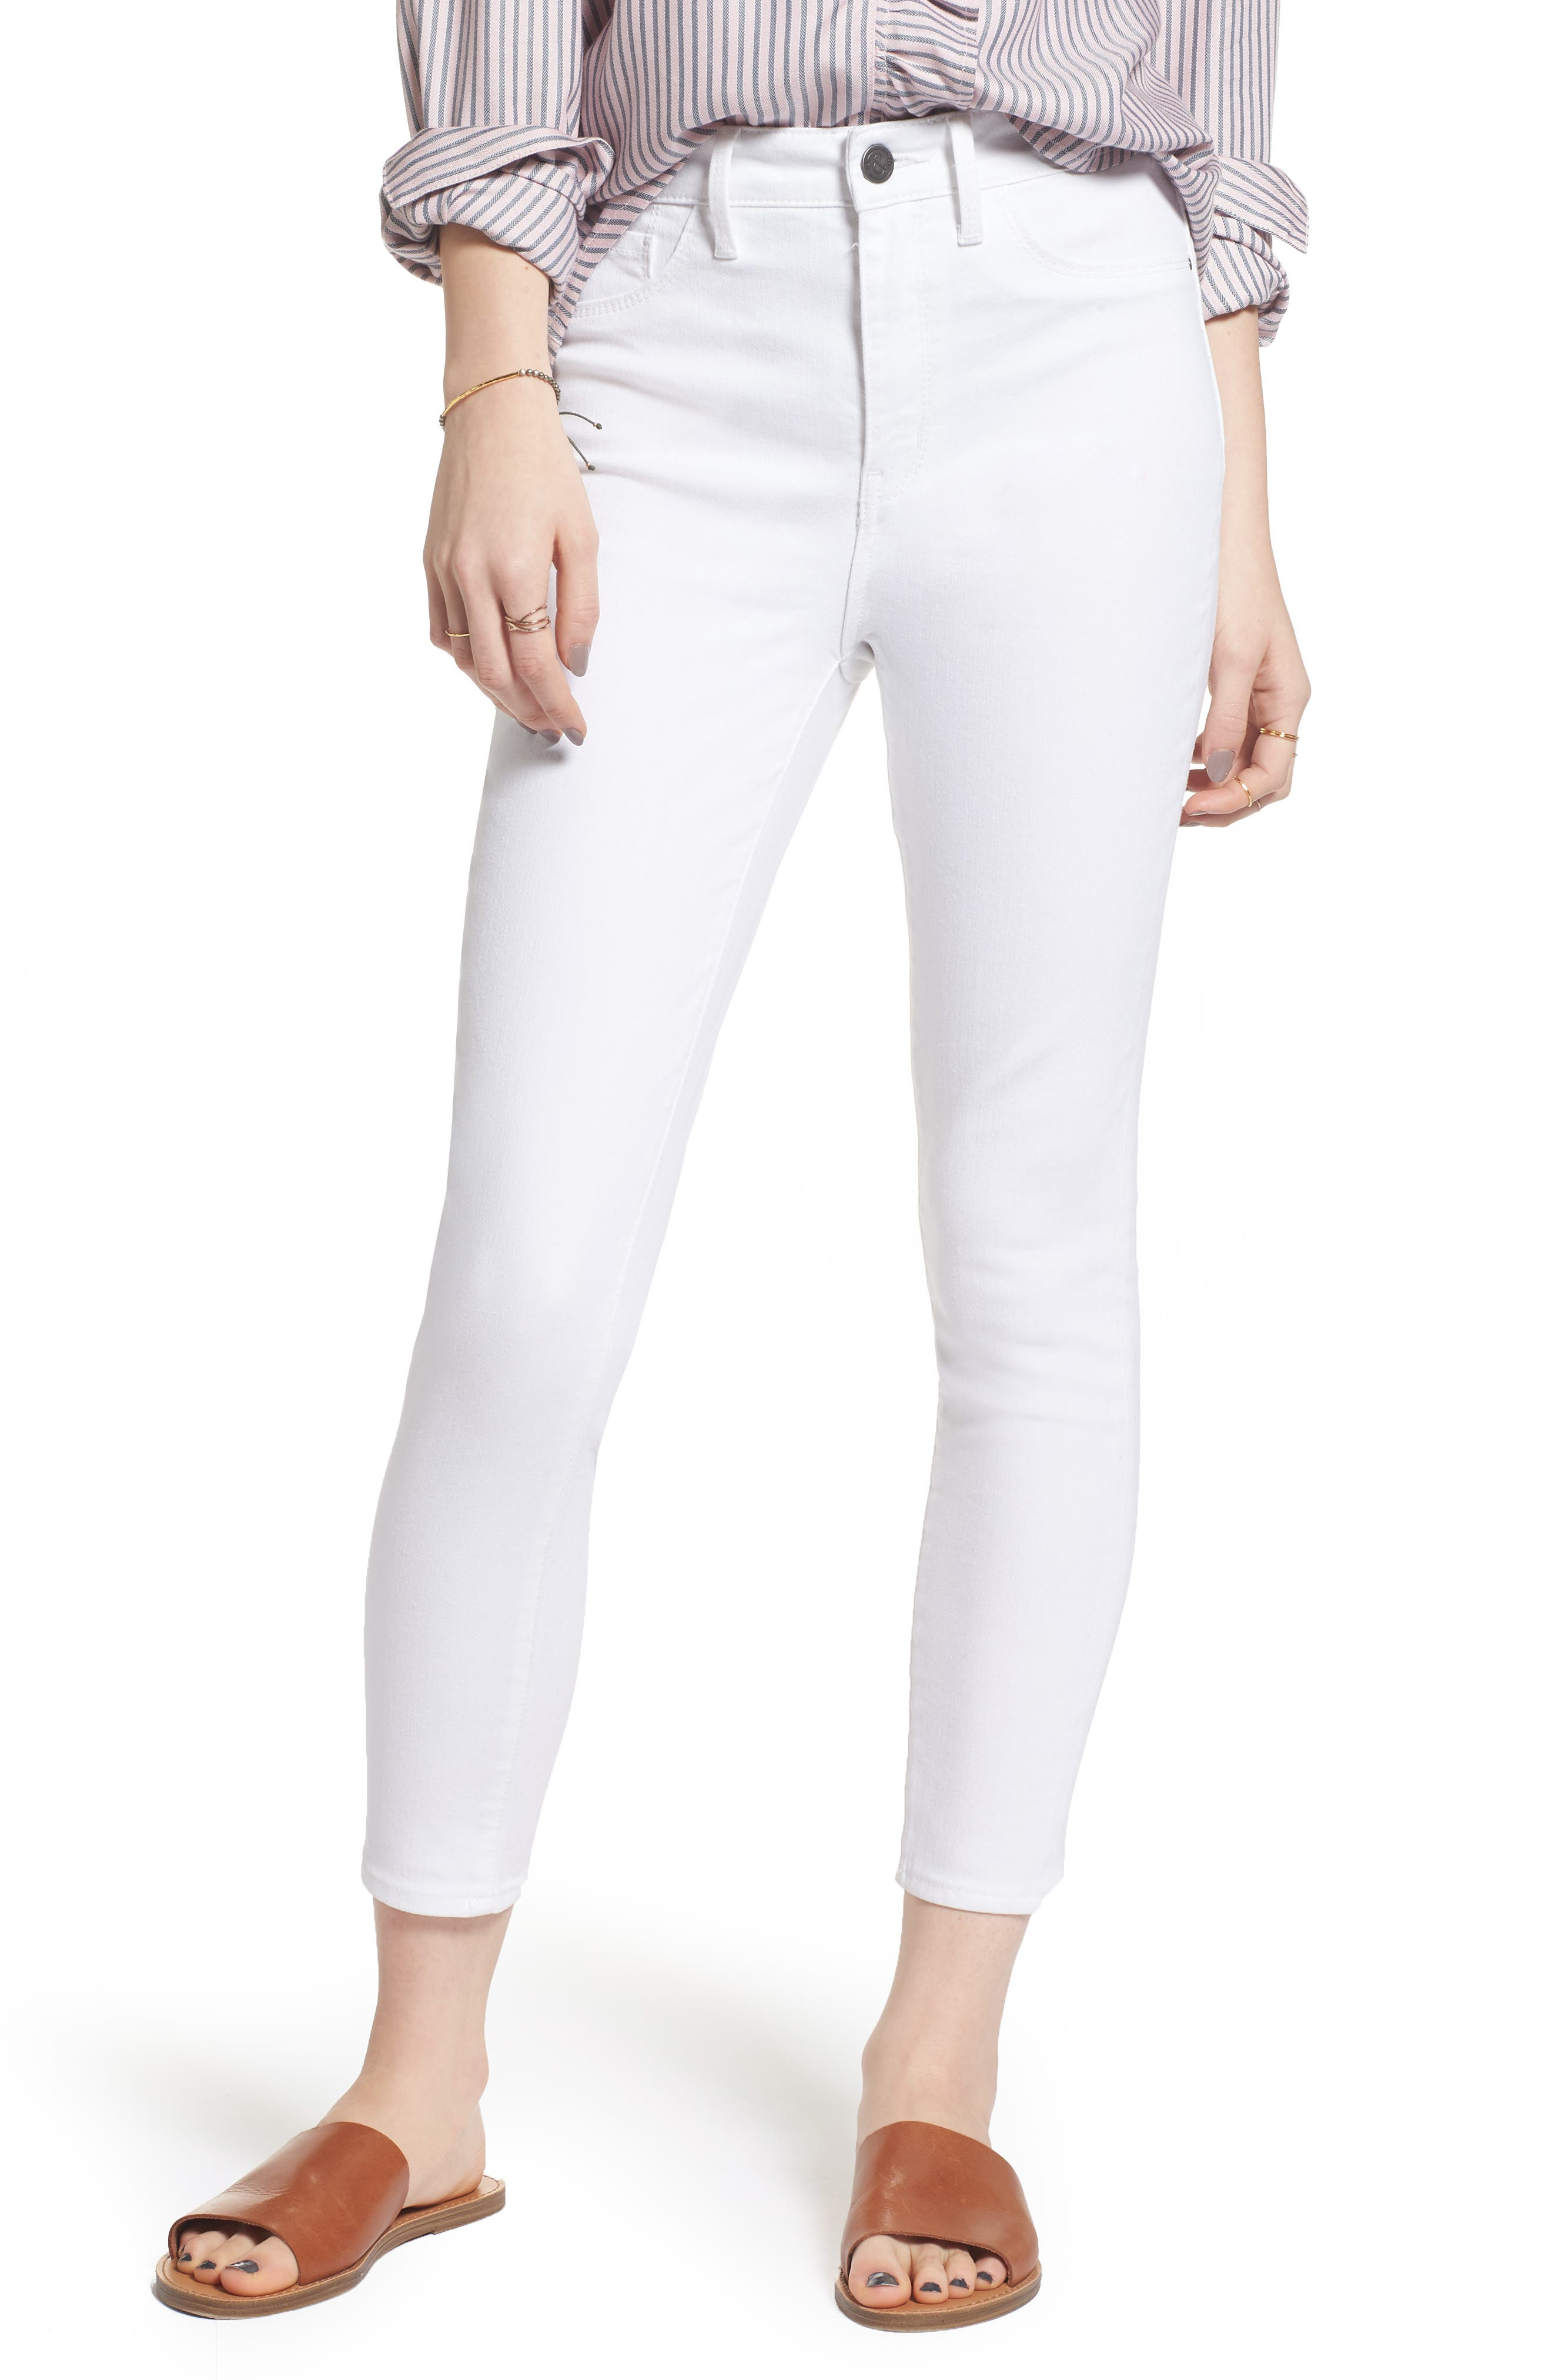 Charity High Waist Crop Skinny Jeans,                         Main,                         color, White